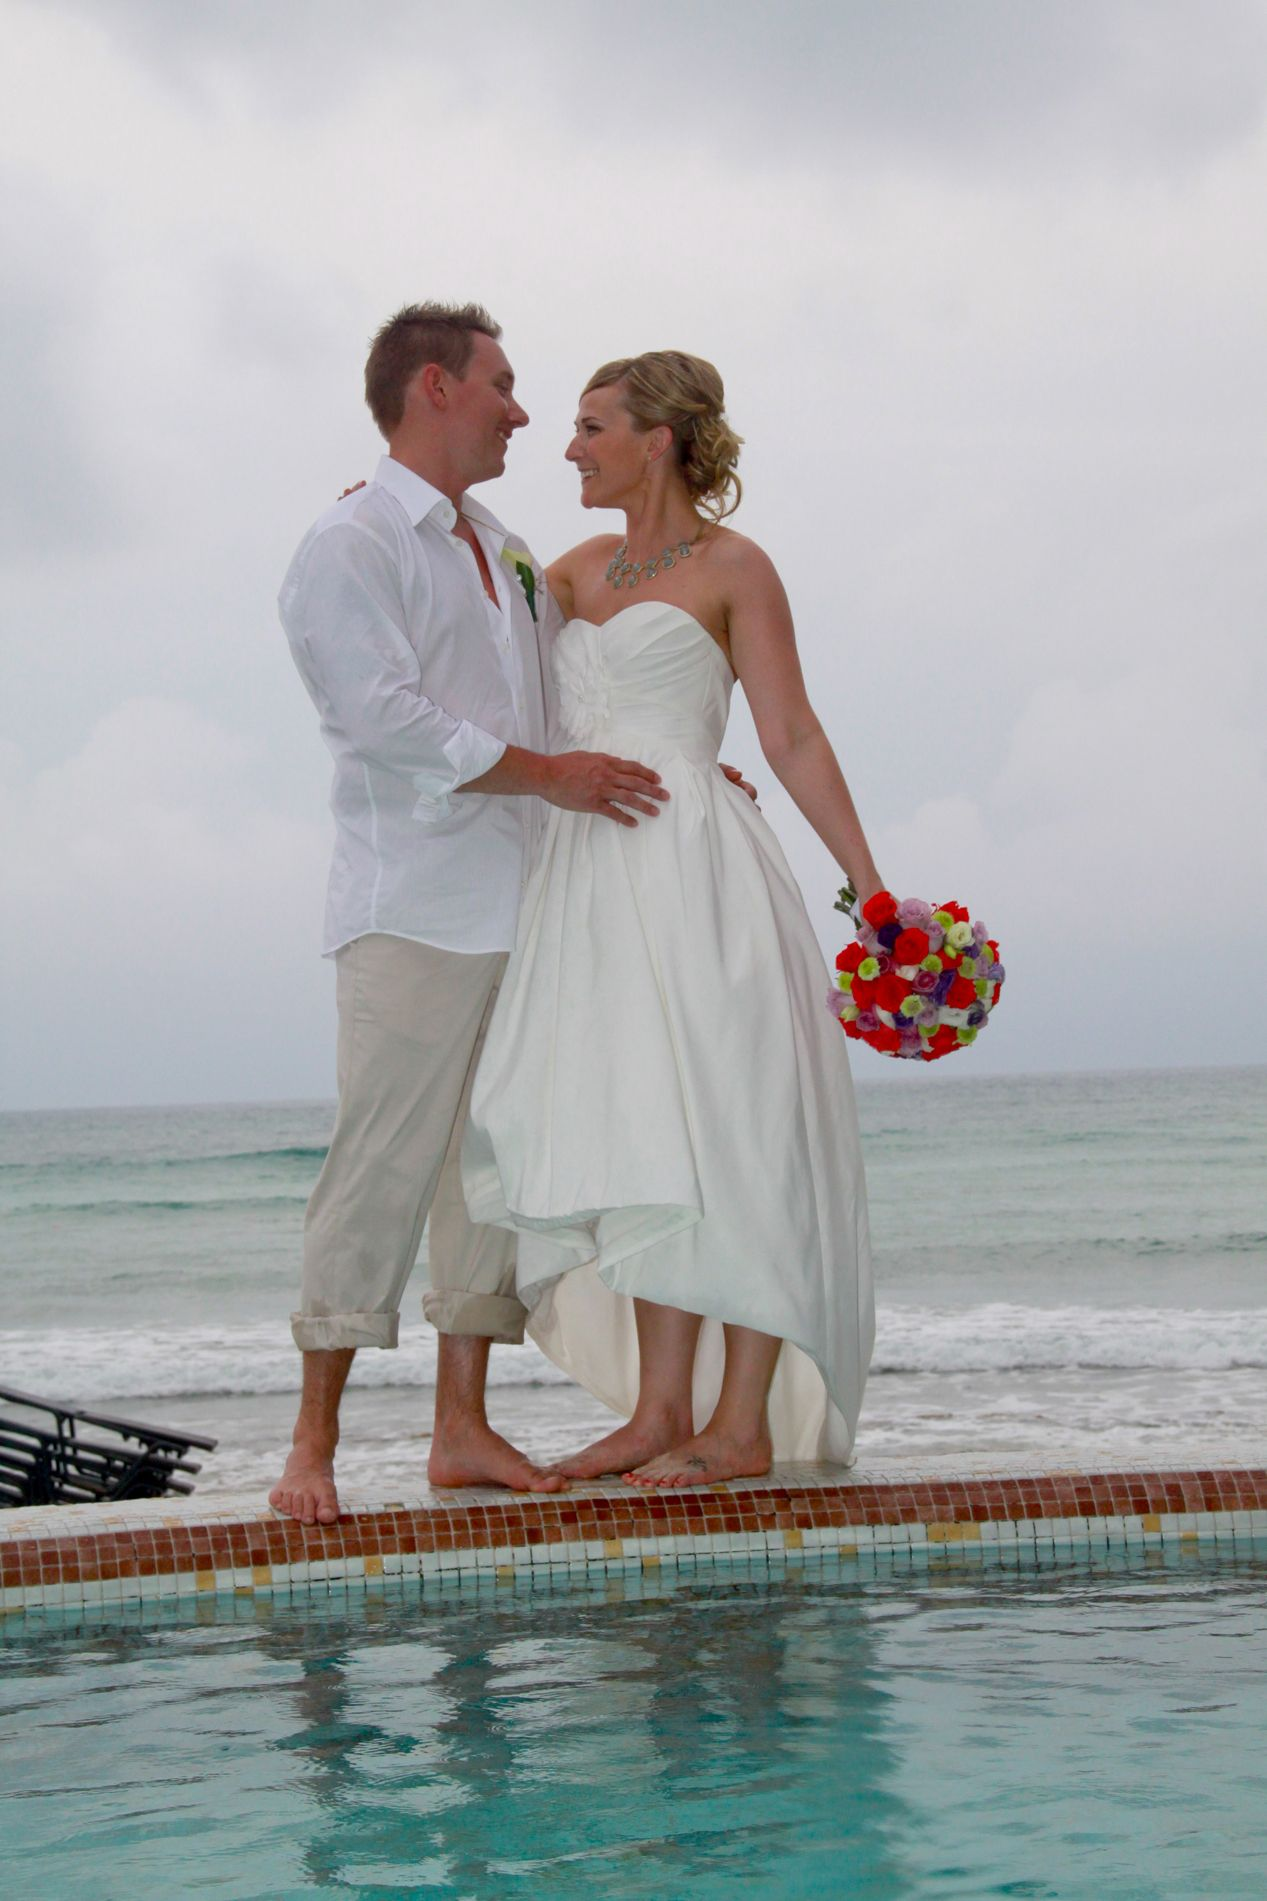 Wedding renewal dresses for beach  The perfect beach wedding dress High low  Wedding  Pinterest